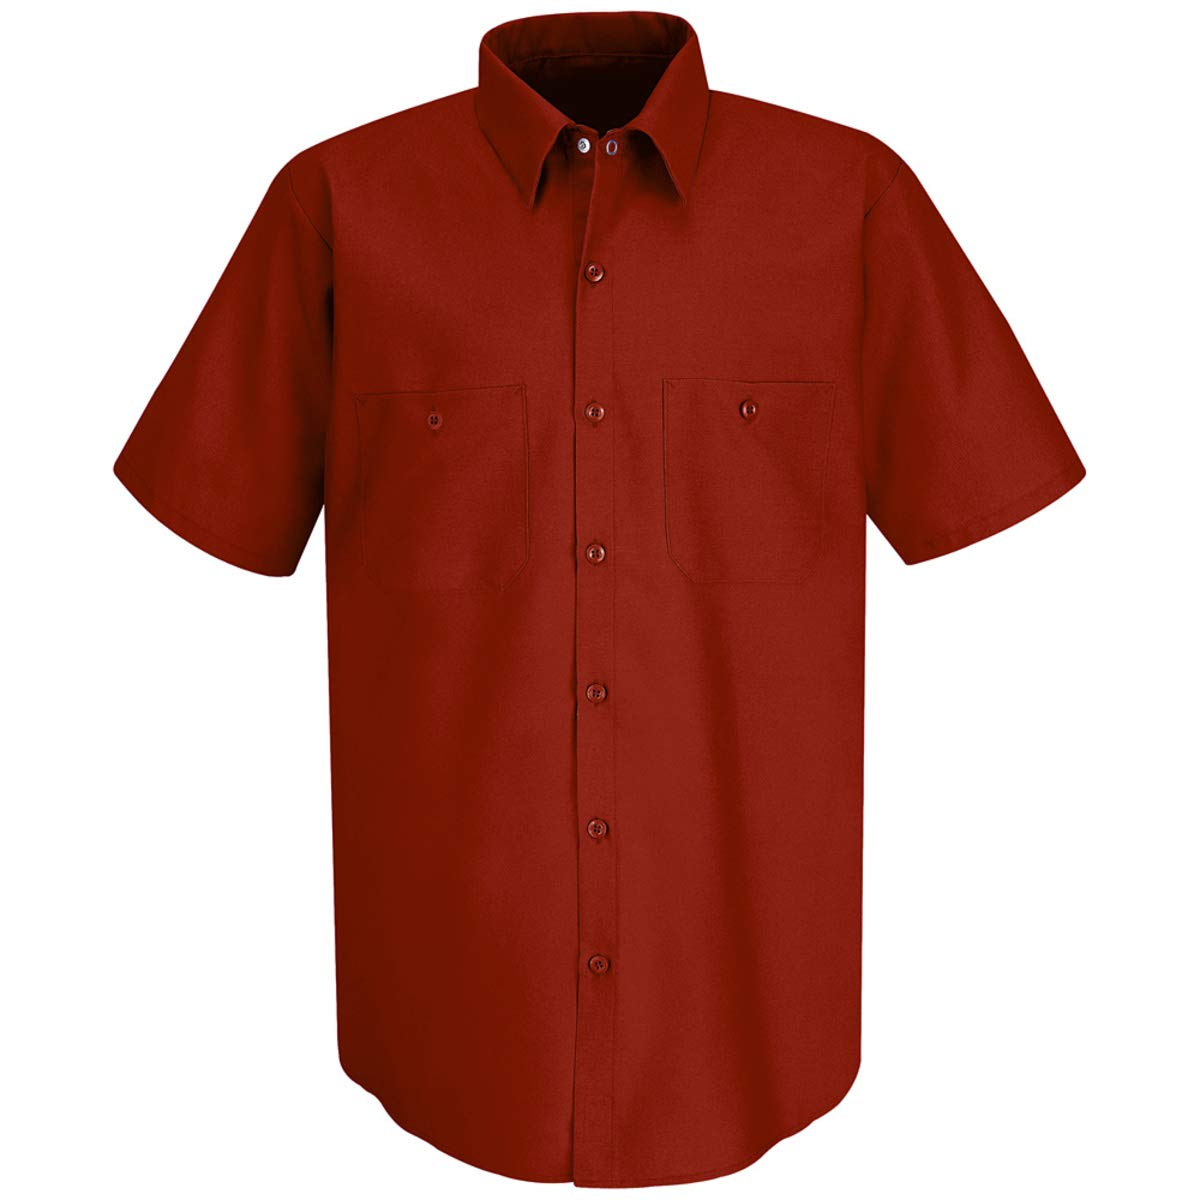 Red Kap Medium Red 4.25 Ounce Polyester/Cotton Shirt With Button Closure